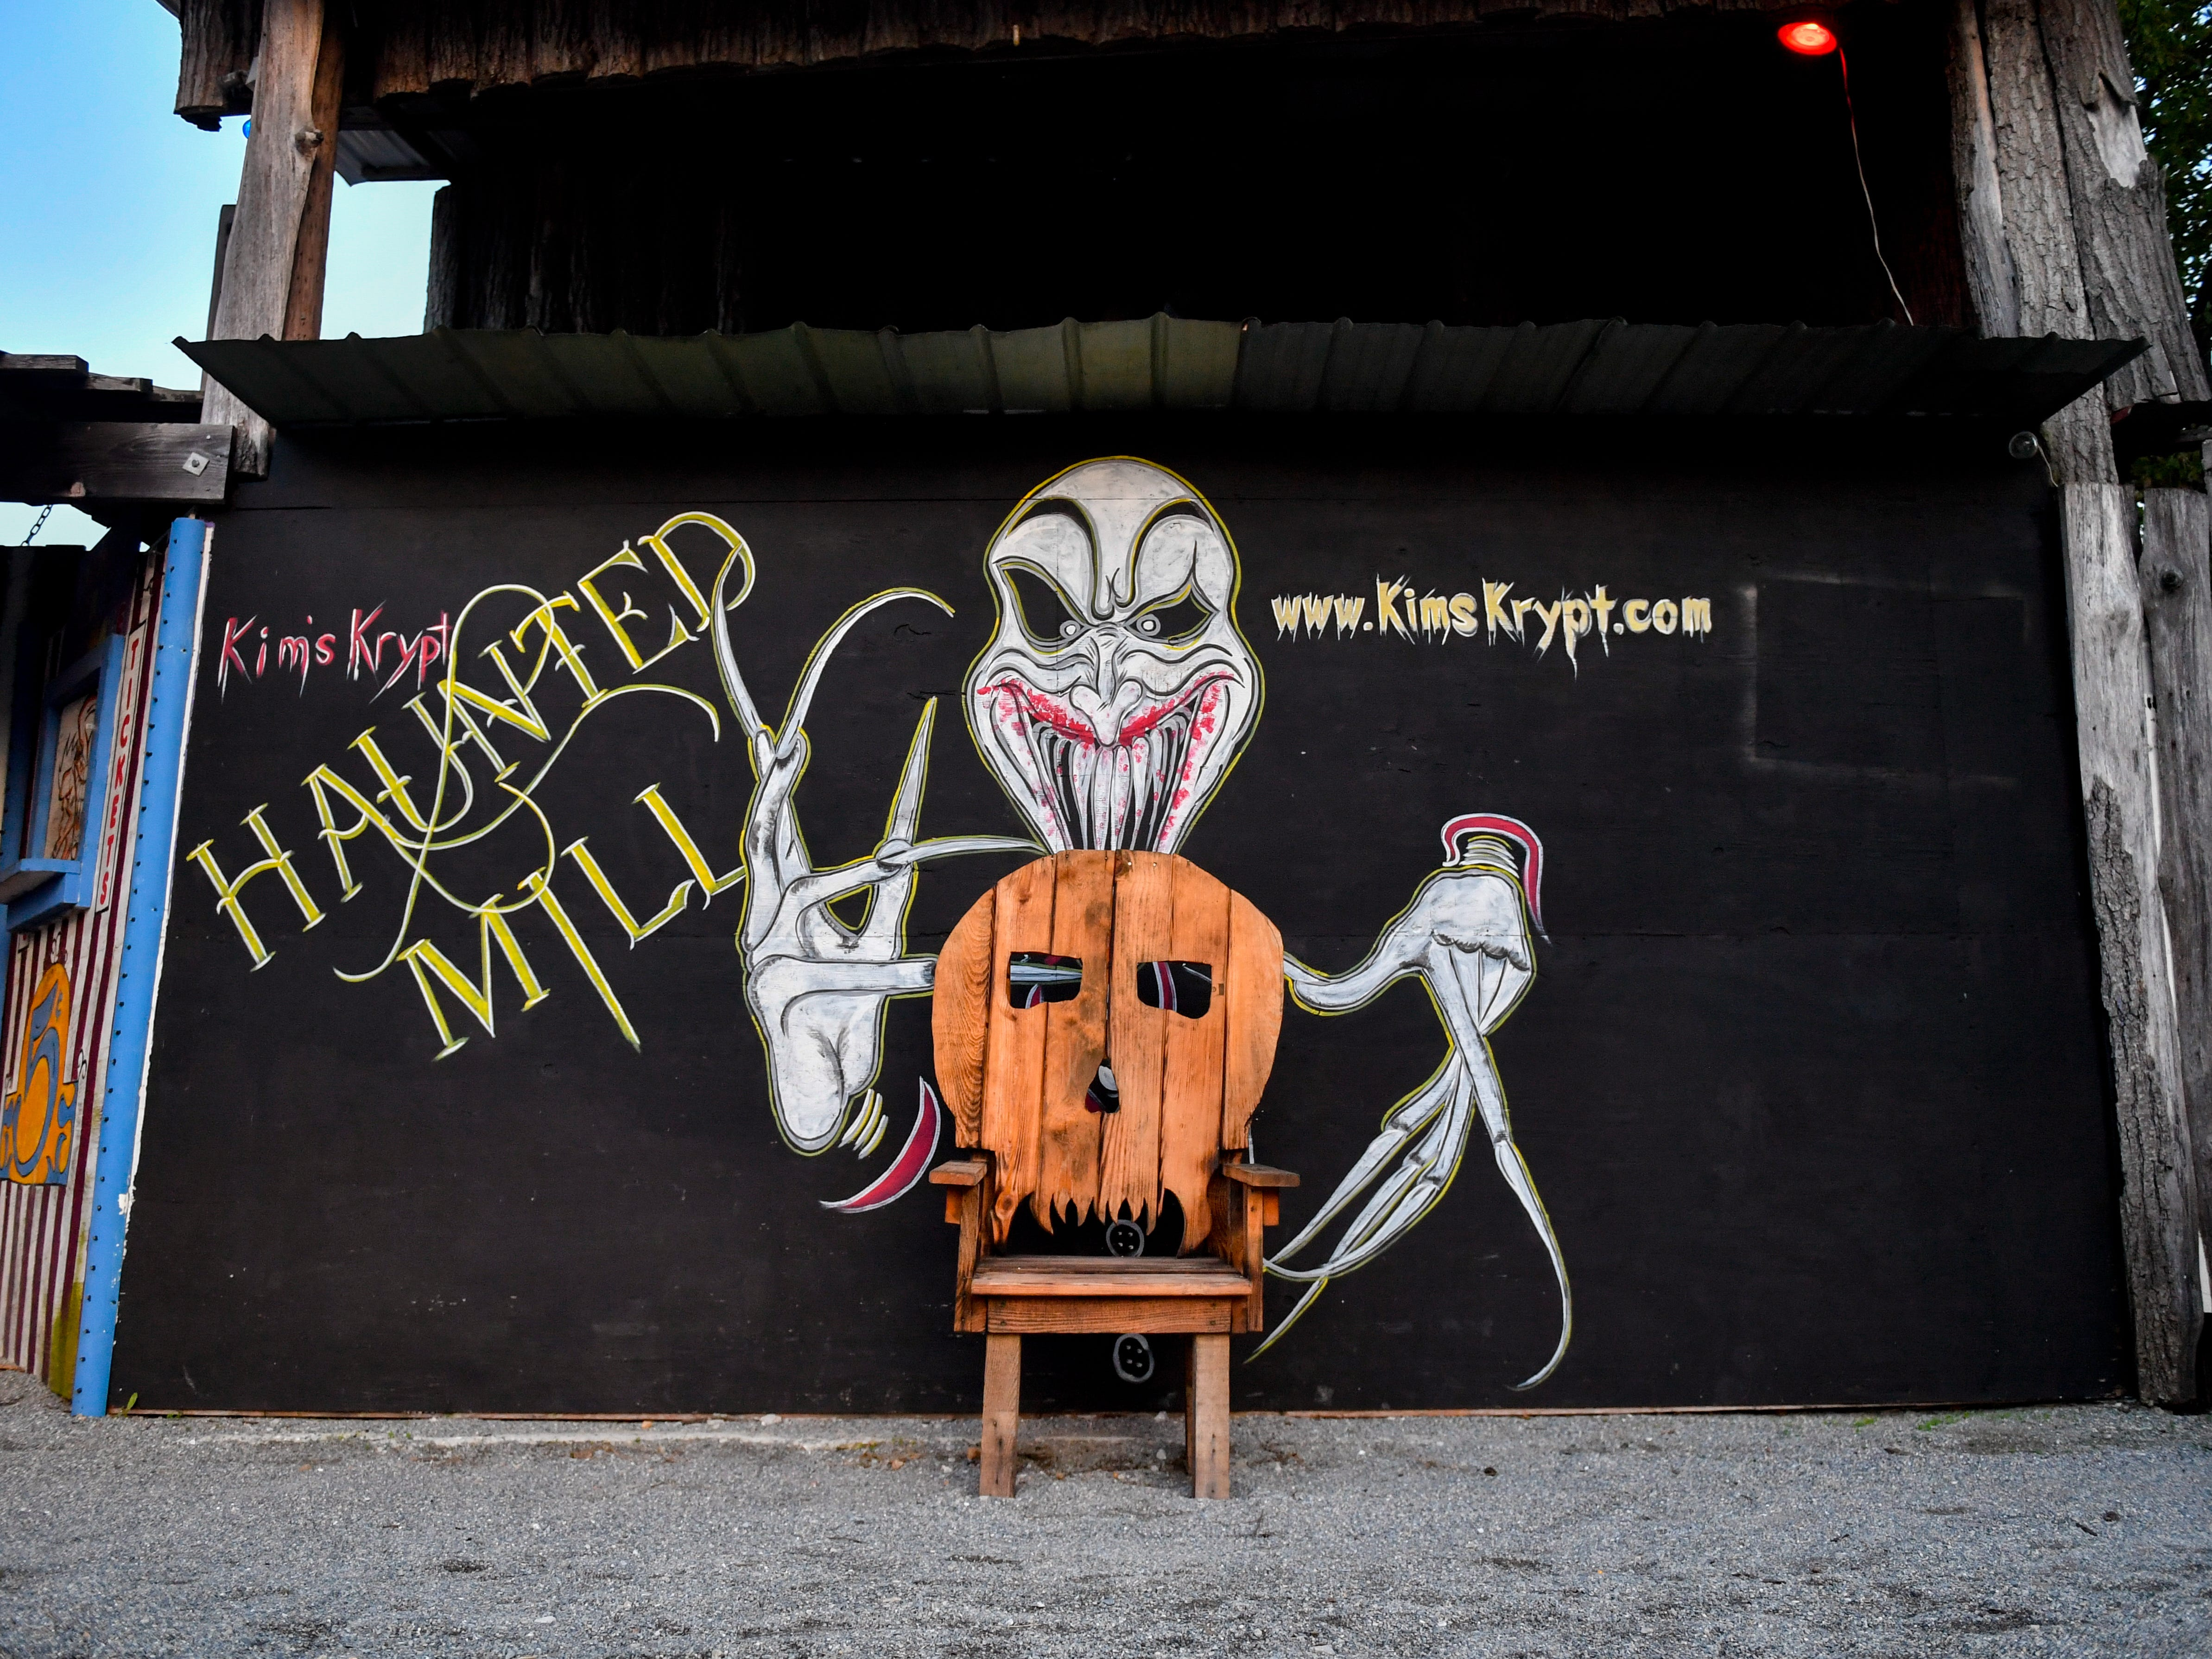 This is a popular place to take photos at Kim's Krypt Haunted Mill, October 12, 2018.